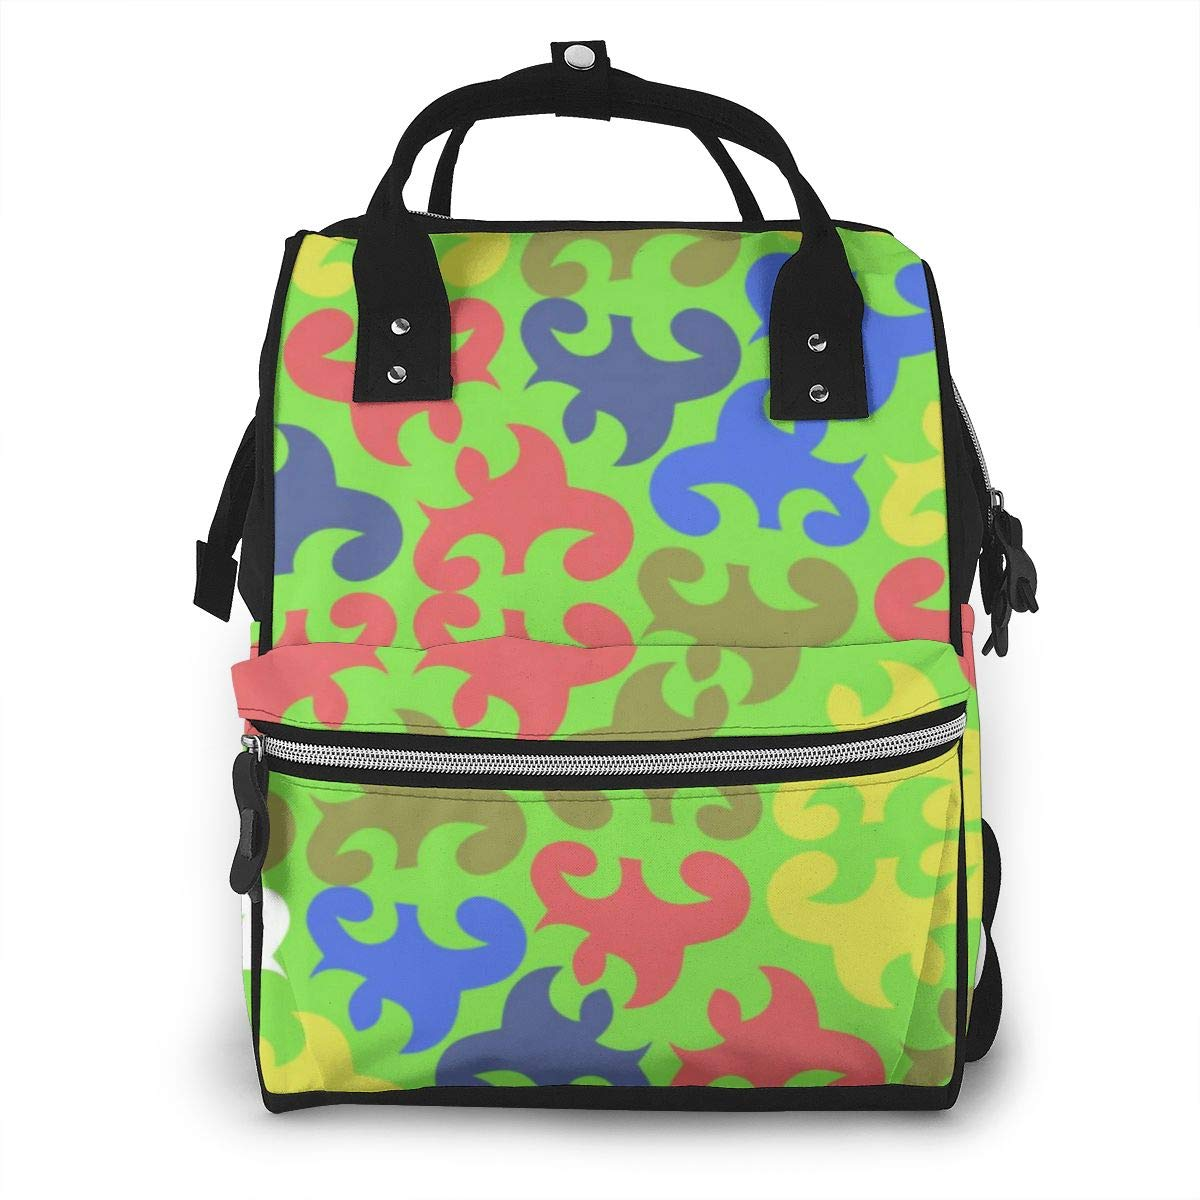 Bright Asian Background Abstract Floral Diaper Bag Mom Dad Travel Backpack Multifunction Waterproof Canvas Large Capacity Baby Bag Maternity Nappy Bags for Baby Care